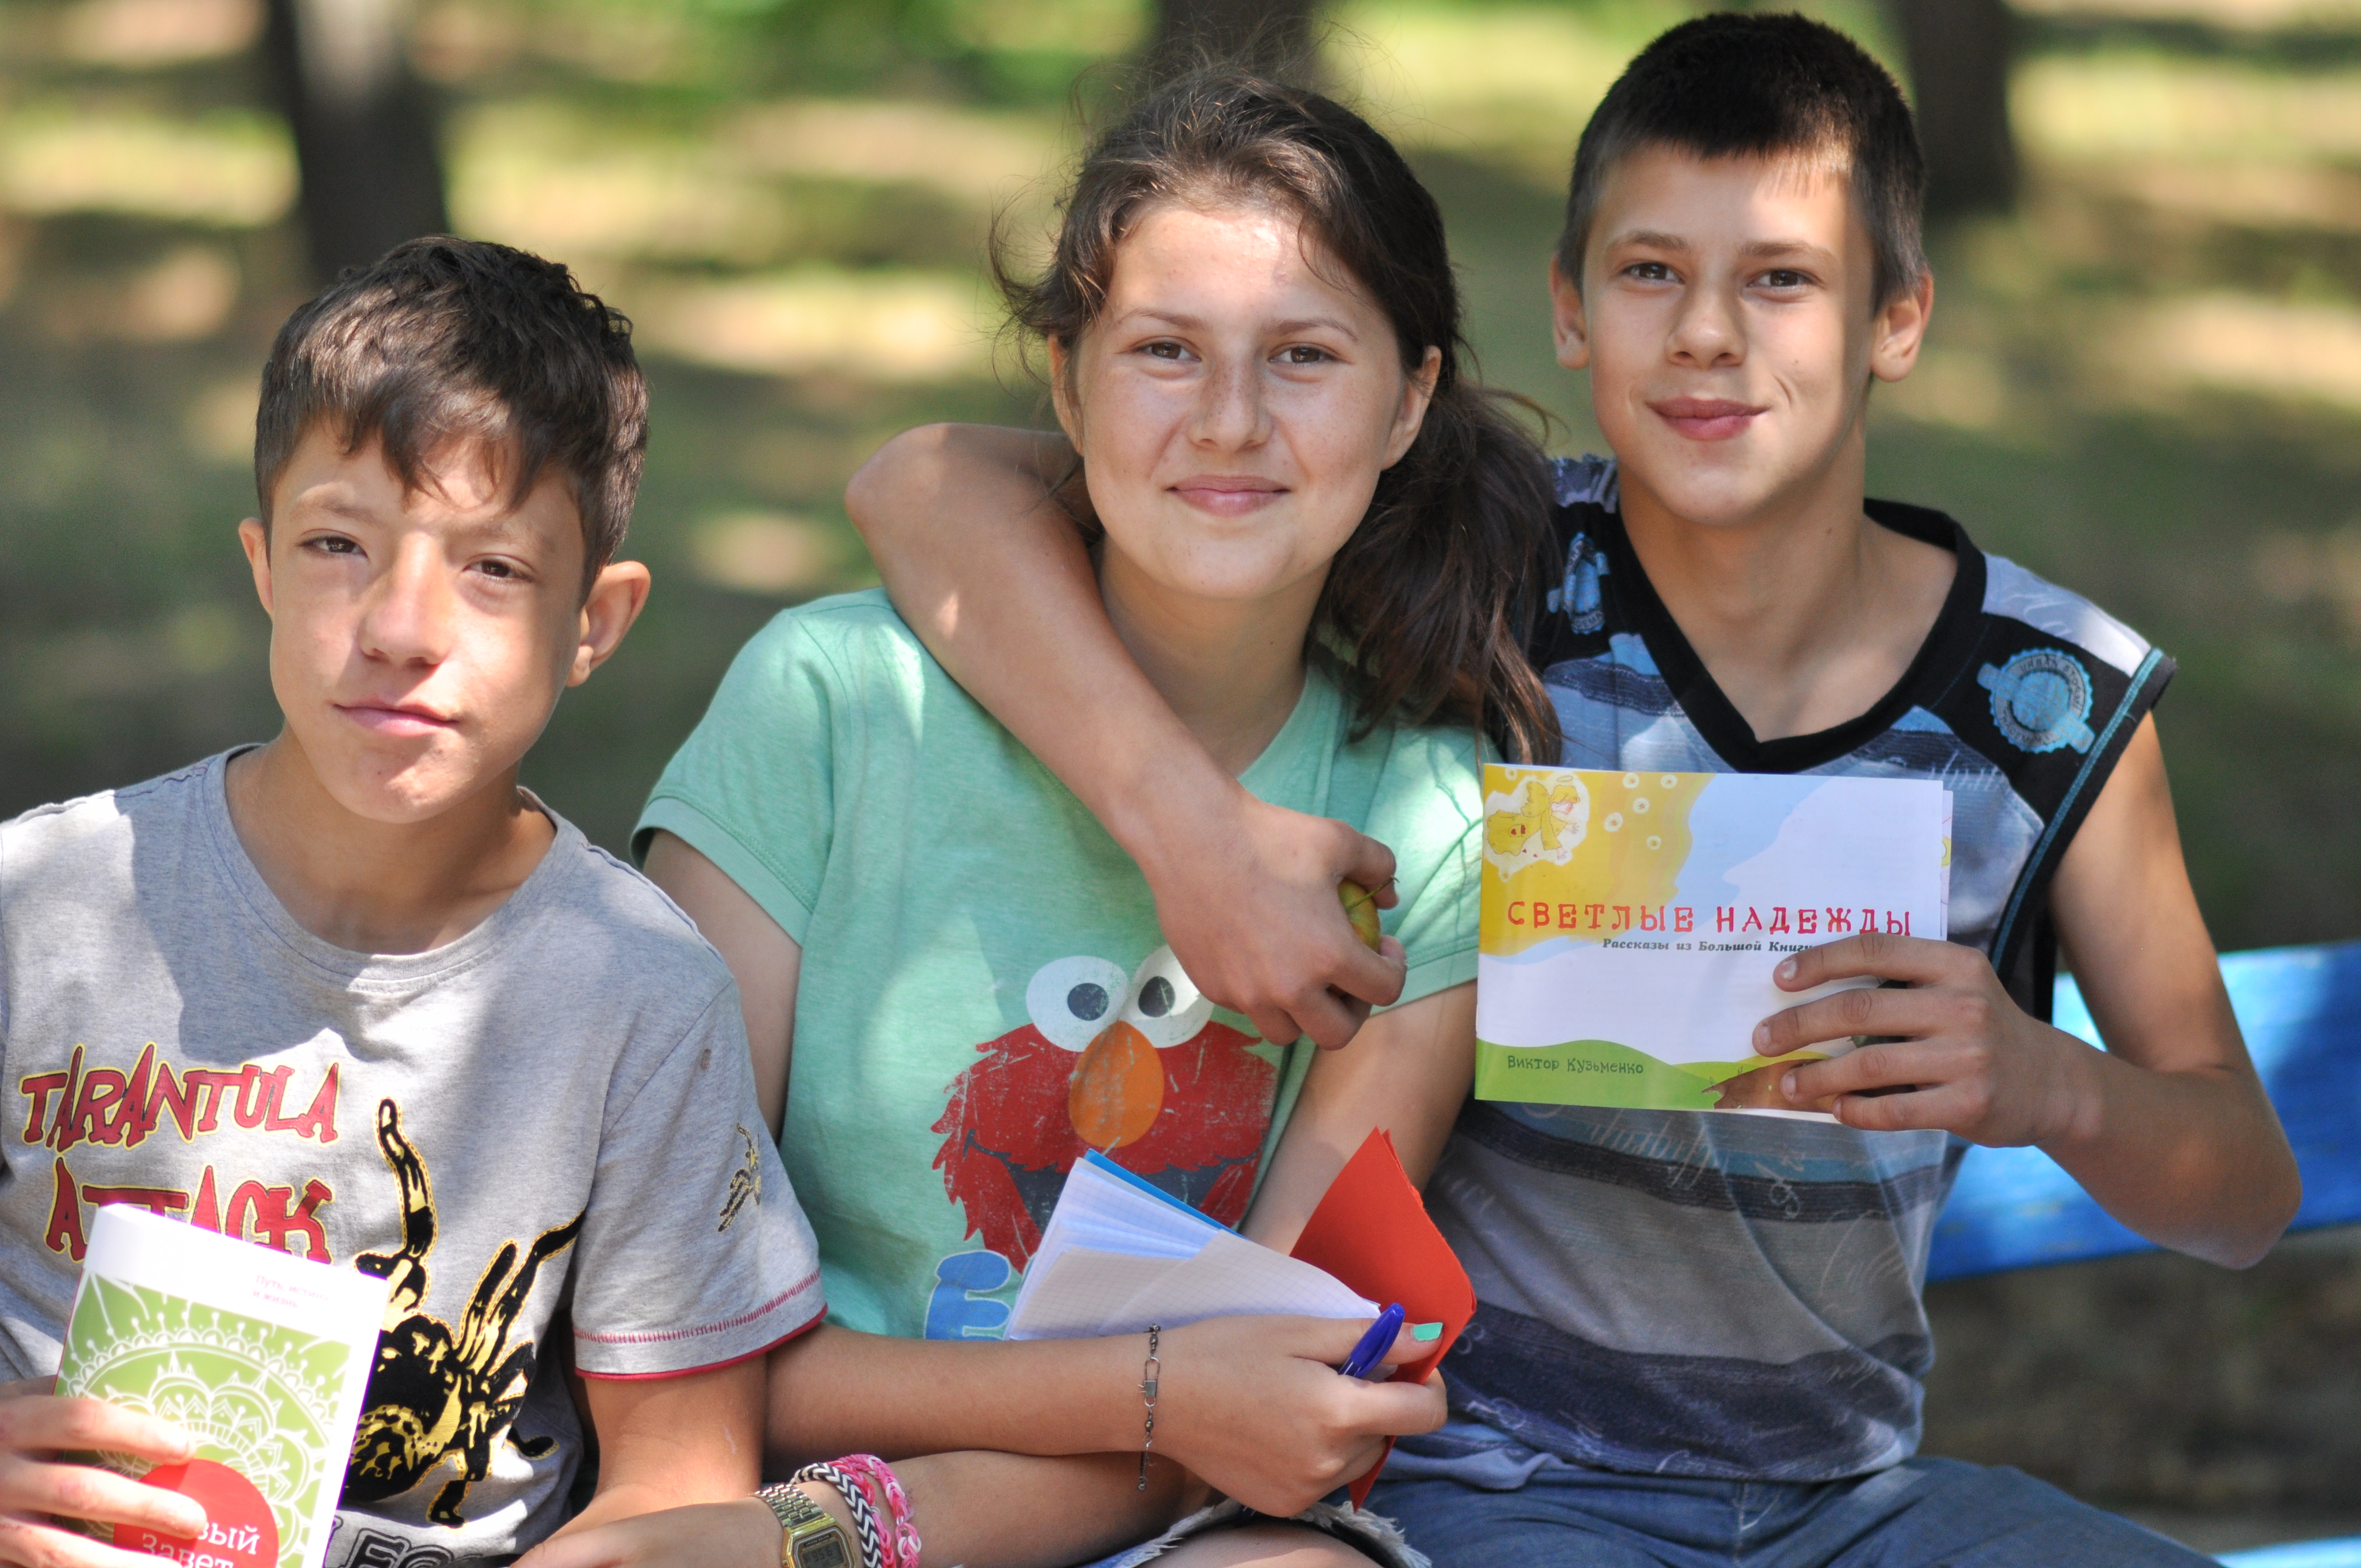 Ukraine kids camp sees 83 commitments to Christ, potential church plant